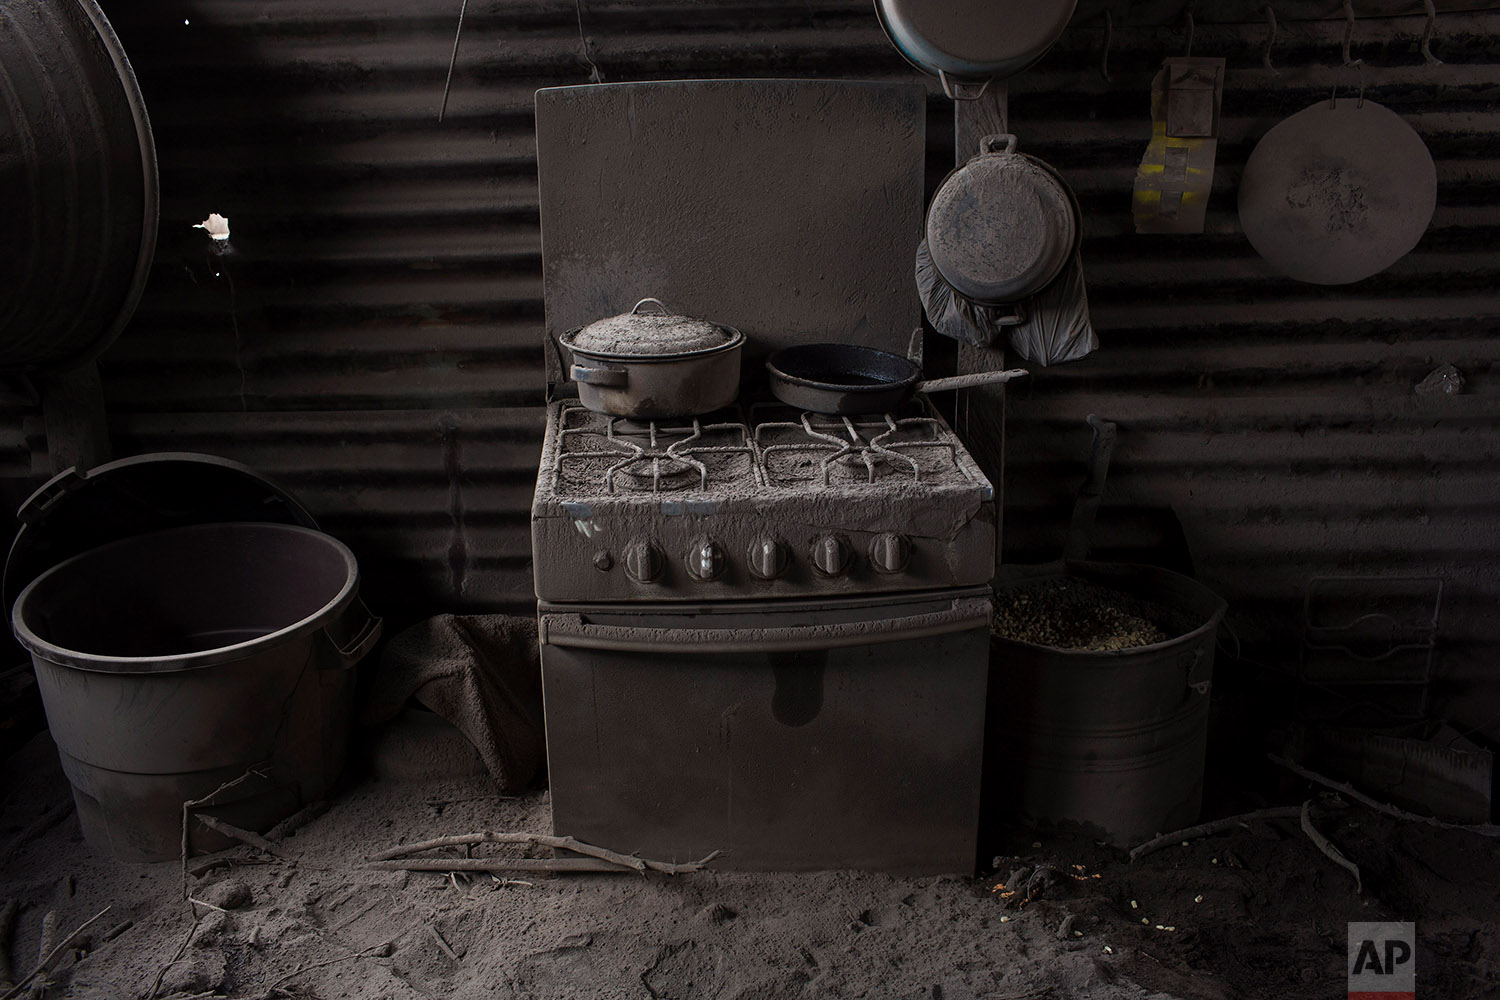 This June 11, 2018 photo shows a kitchen blanketed in volcanic ash spewed by the Volcan de Fuego or Volcano of Fire, in San Miguel Los Lotes, Guatemala. (AP Photo/Rodrigo Abd)